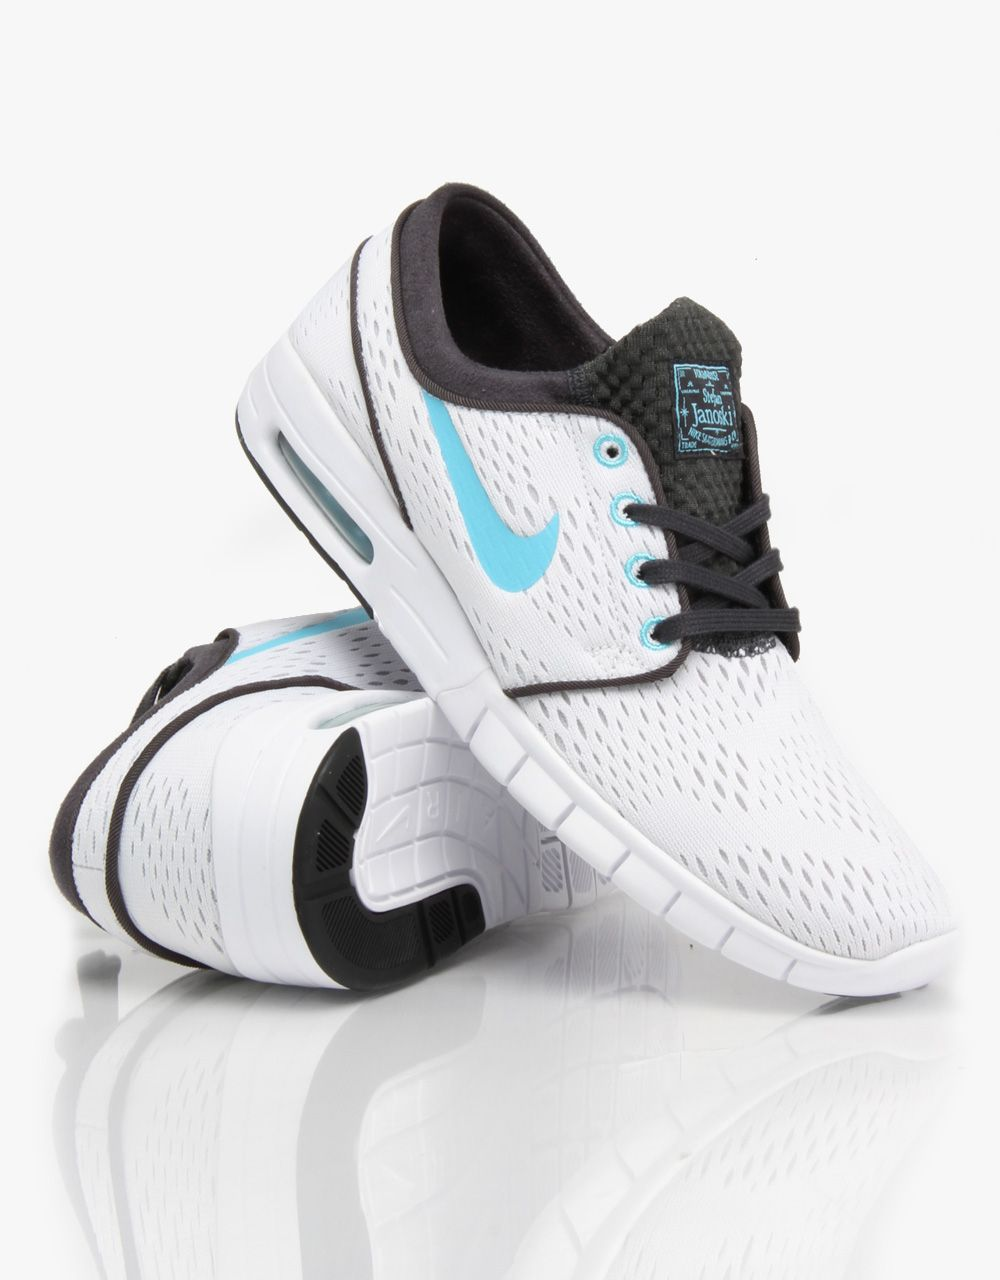 nike sb stefan janoski max shoes white clearwater anthracite black